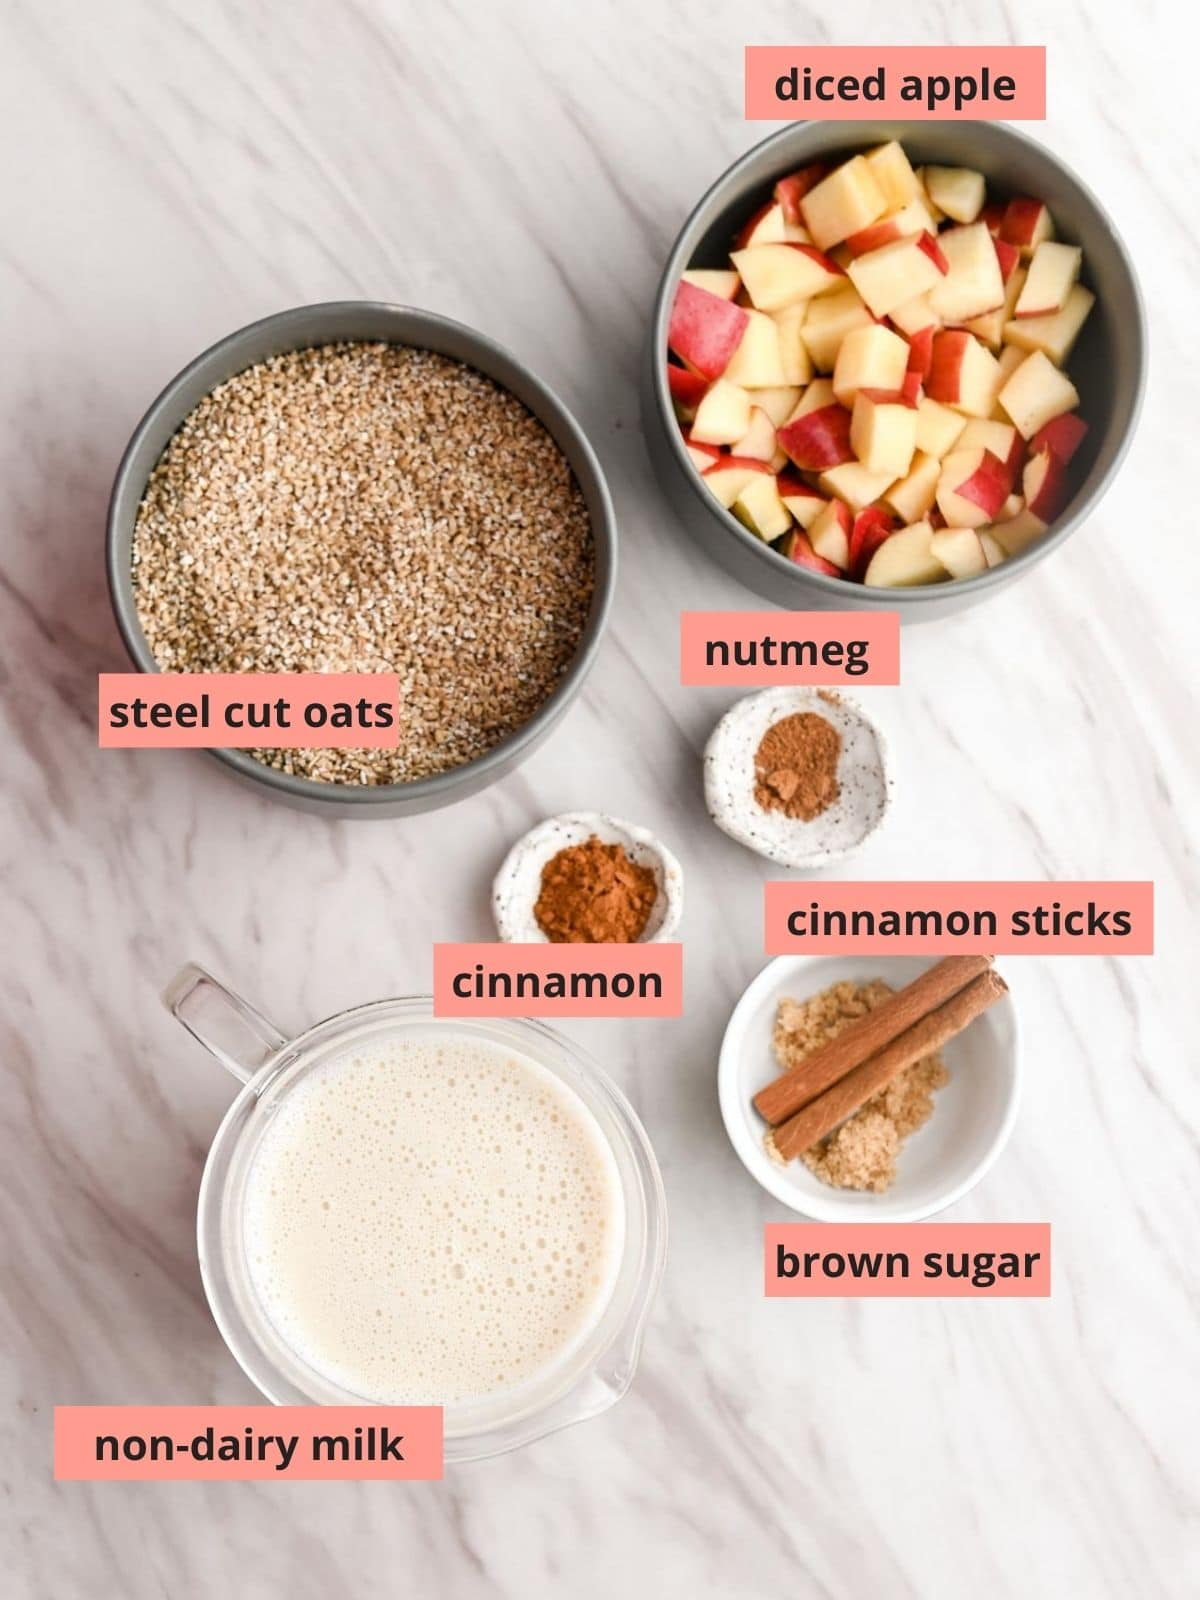 Labeled ingredients used to make steel cut oats